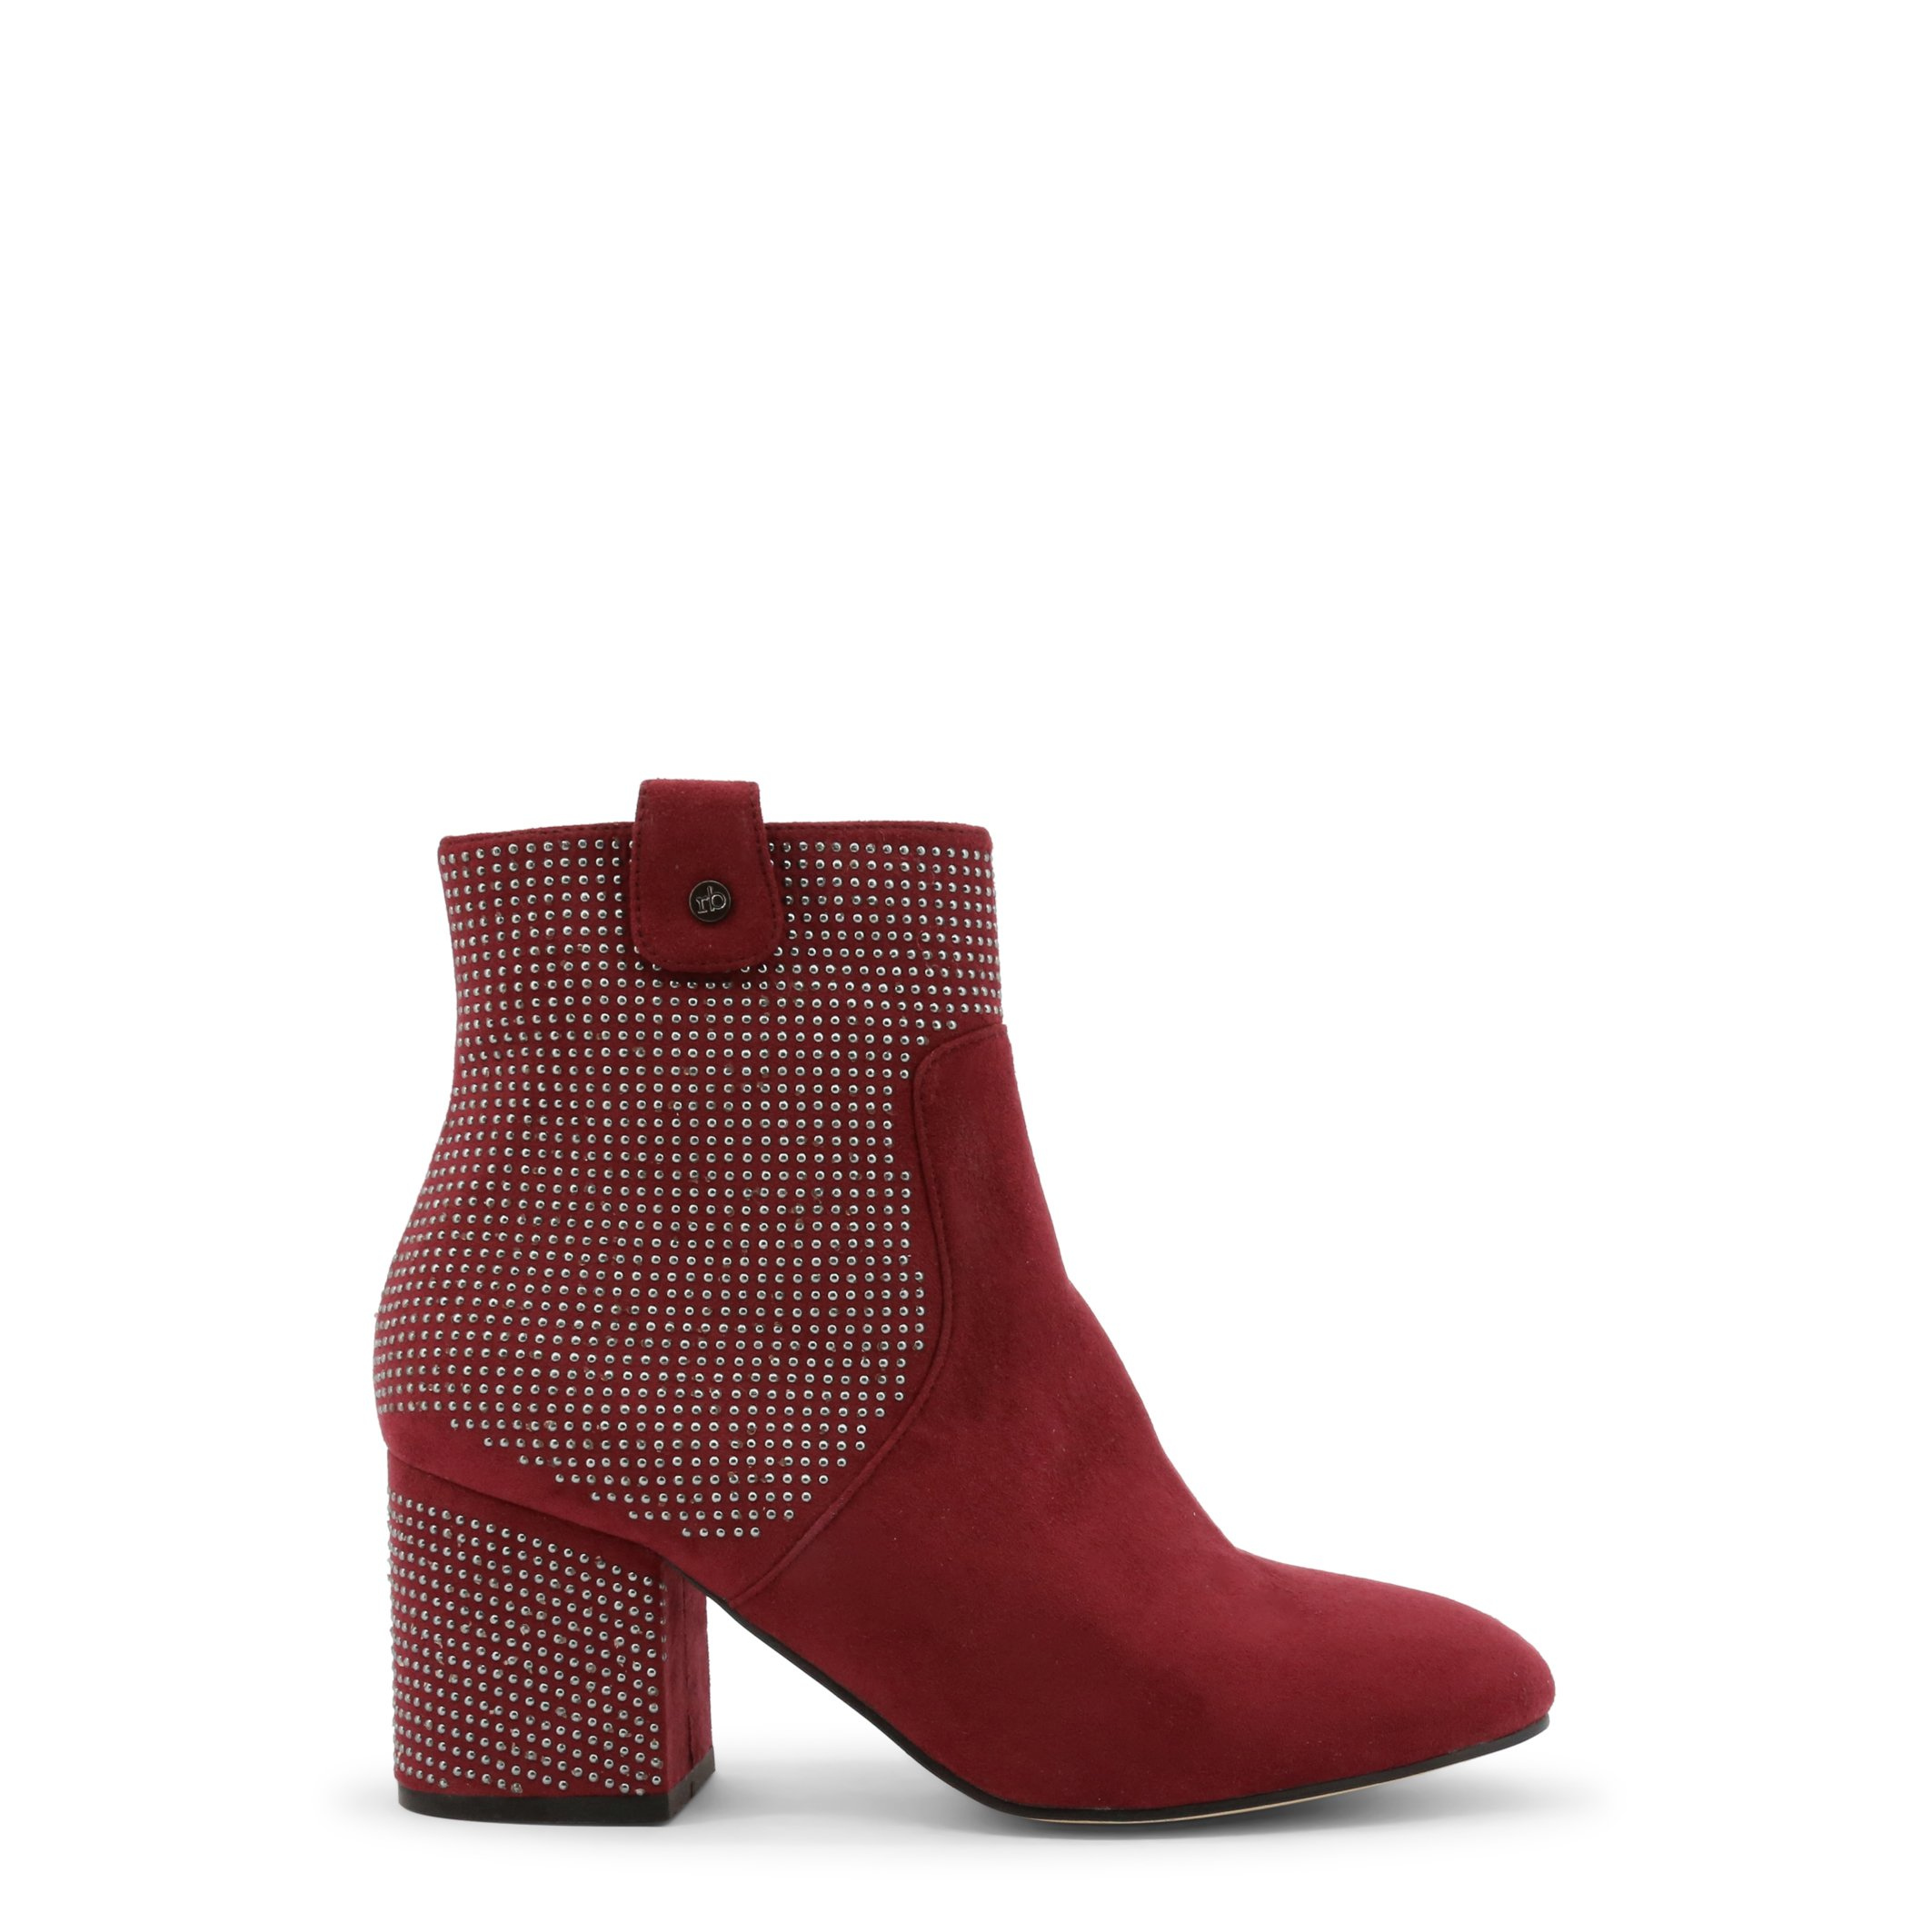 Roccobarocco Women's Ankle Boot Black RBSC1JT01STD - red EU 37